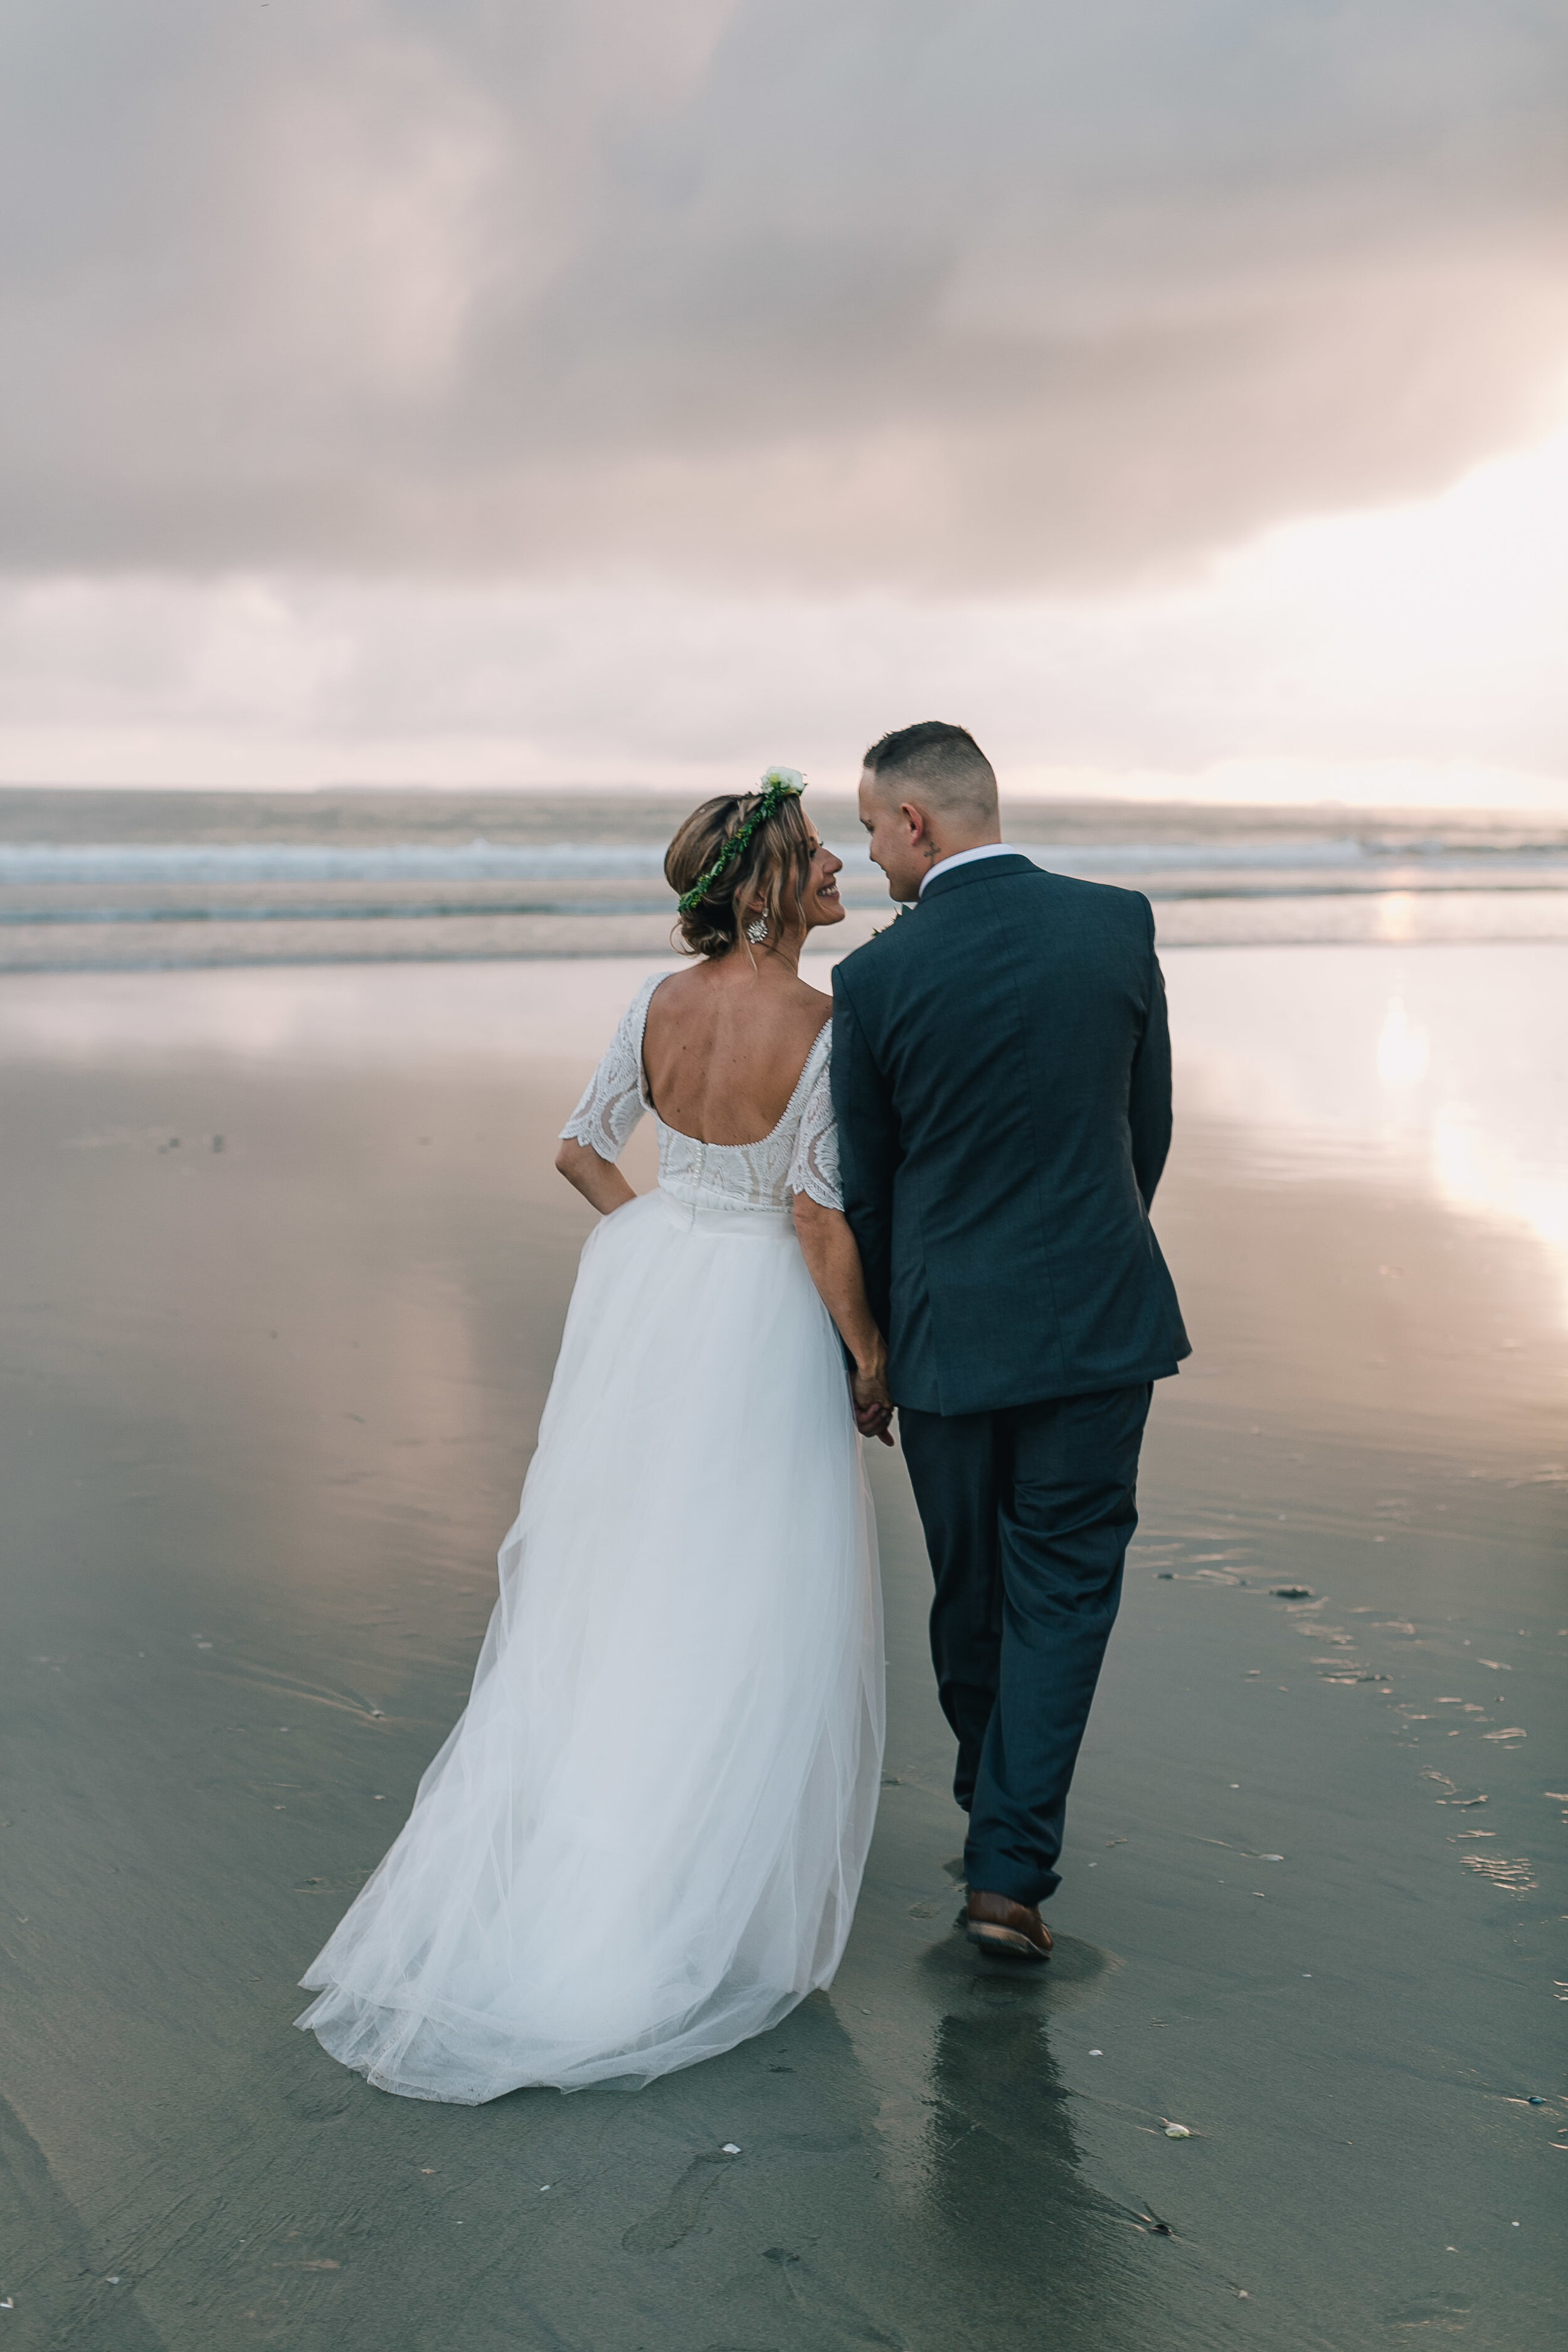 Kelly & Reece - Swift & Click Photography